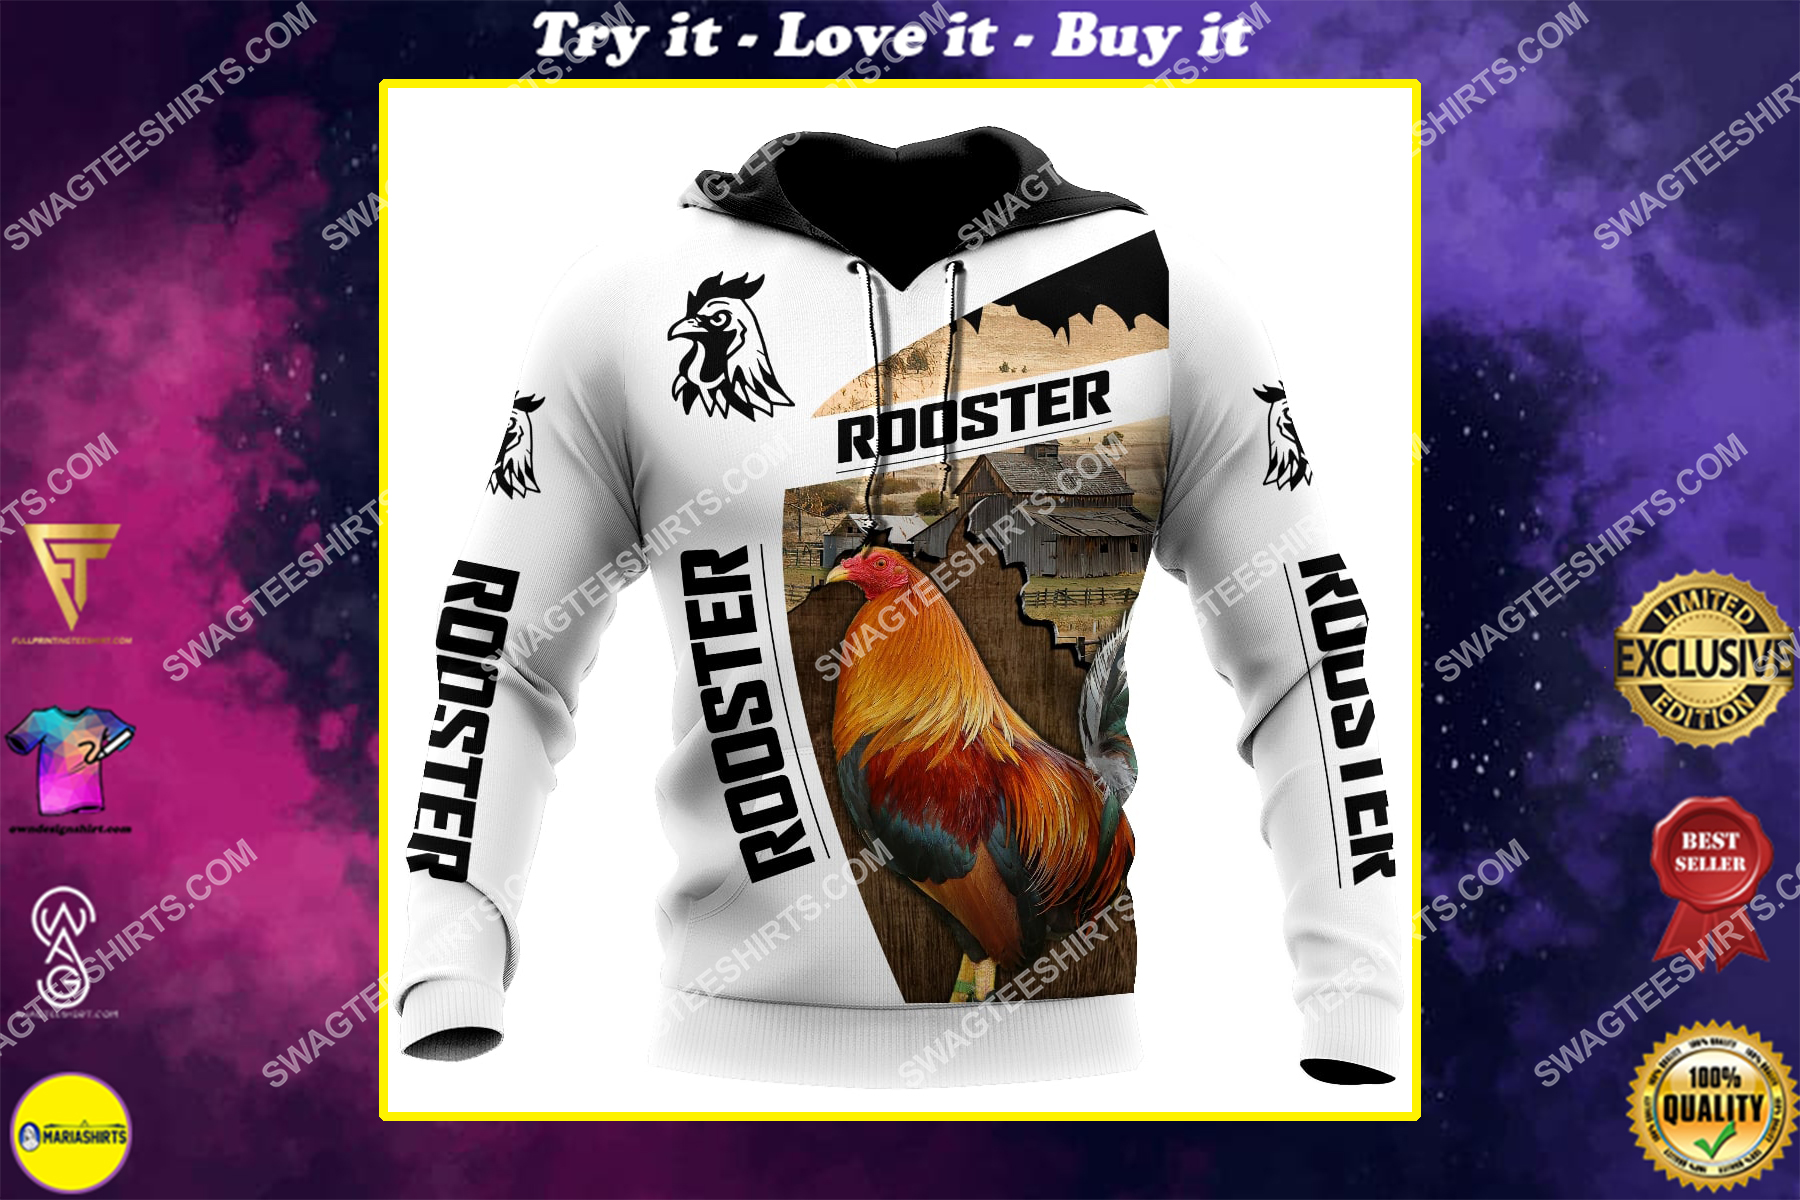 the rooster chicken and farm life full printing shirt 1